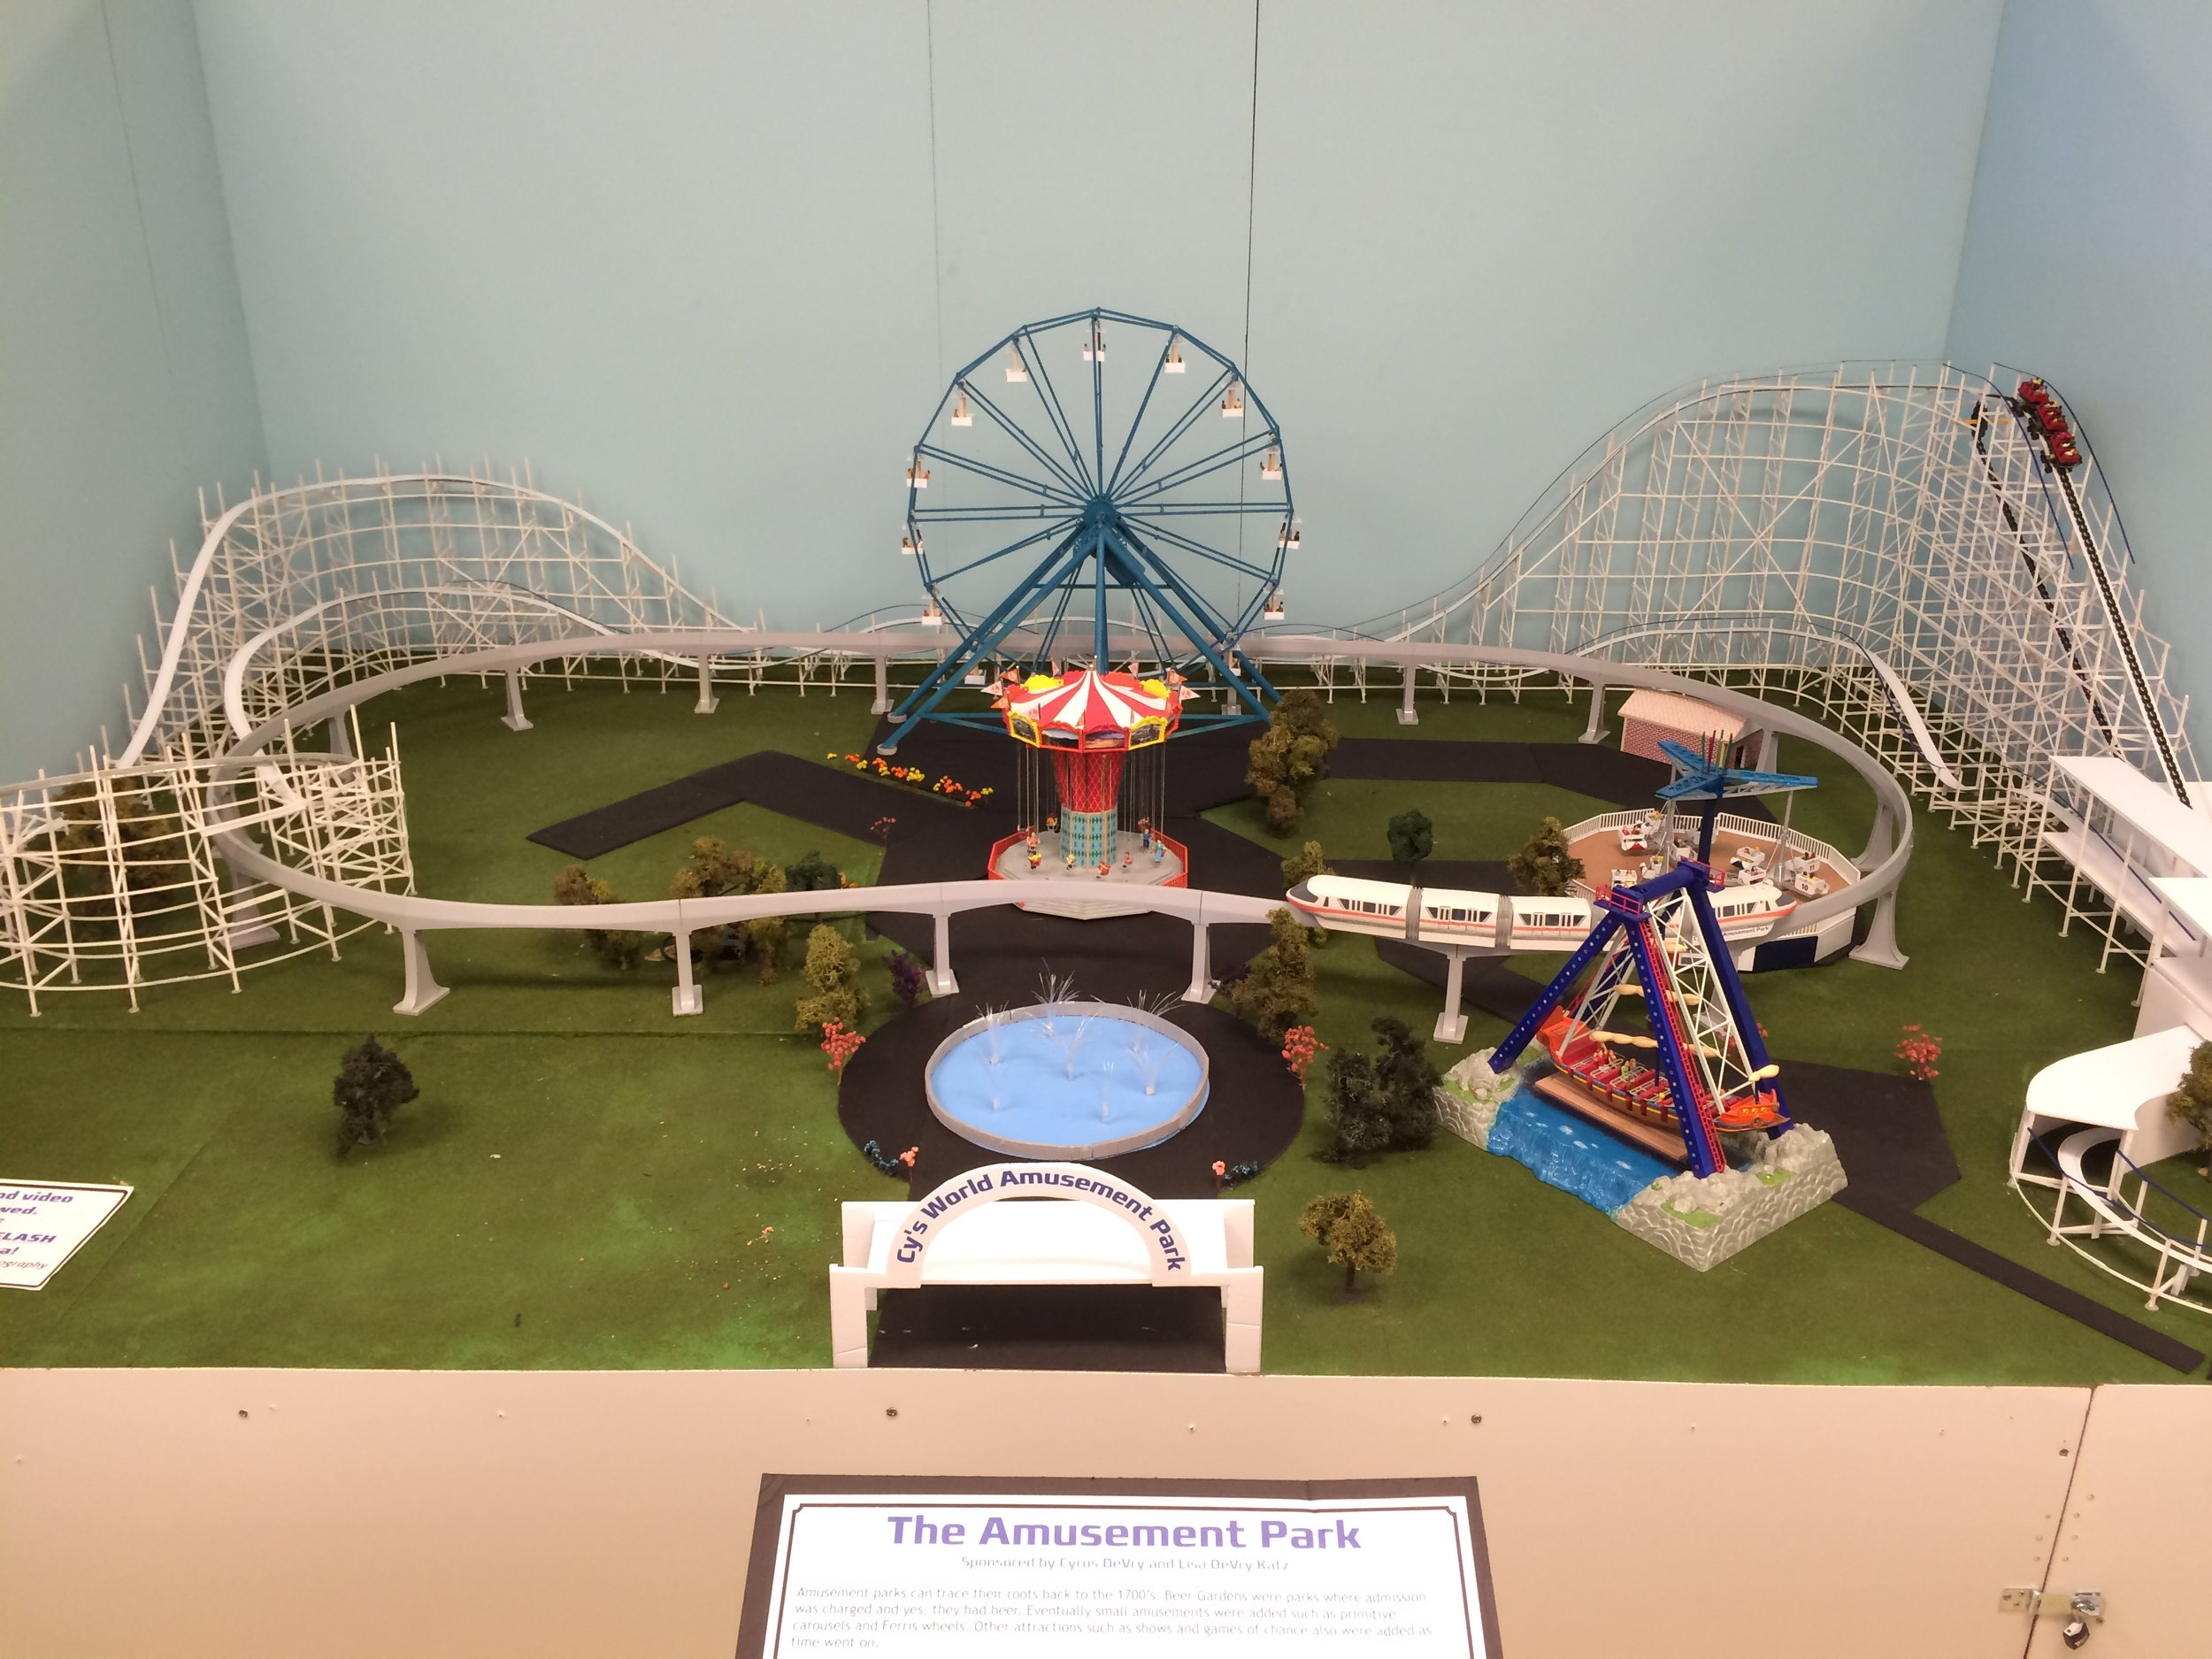 Exhibit: The Amusement Park (Cy's World) - The revised model of Cy's World.